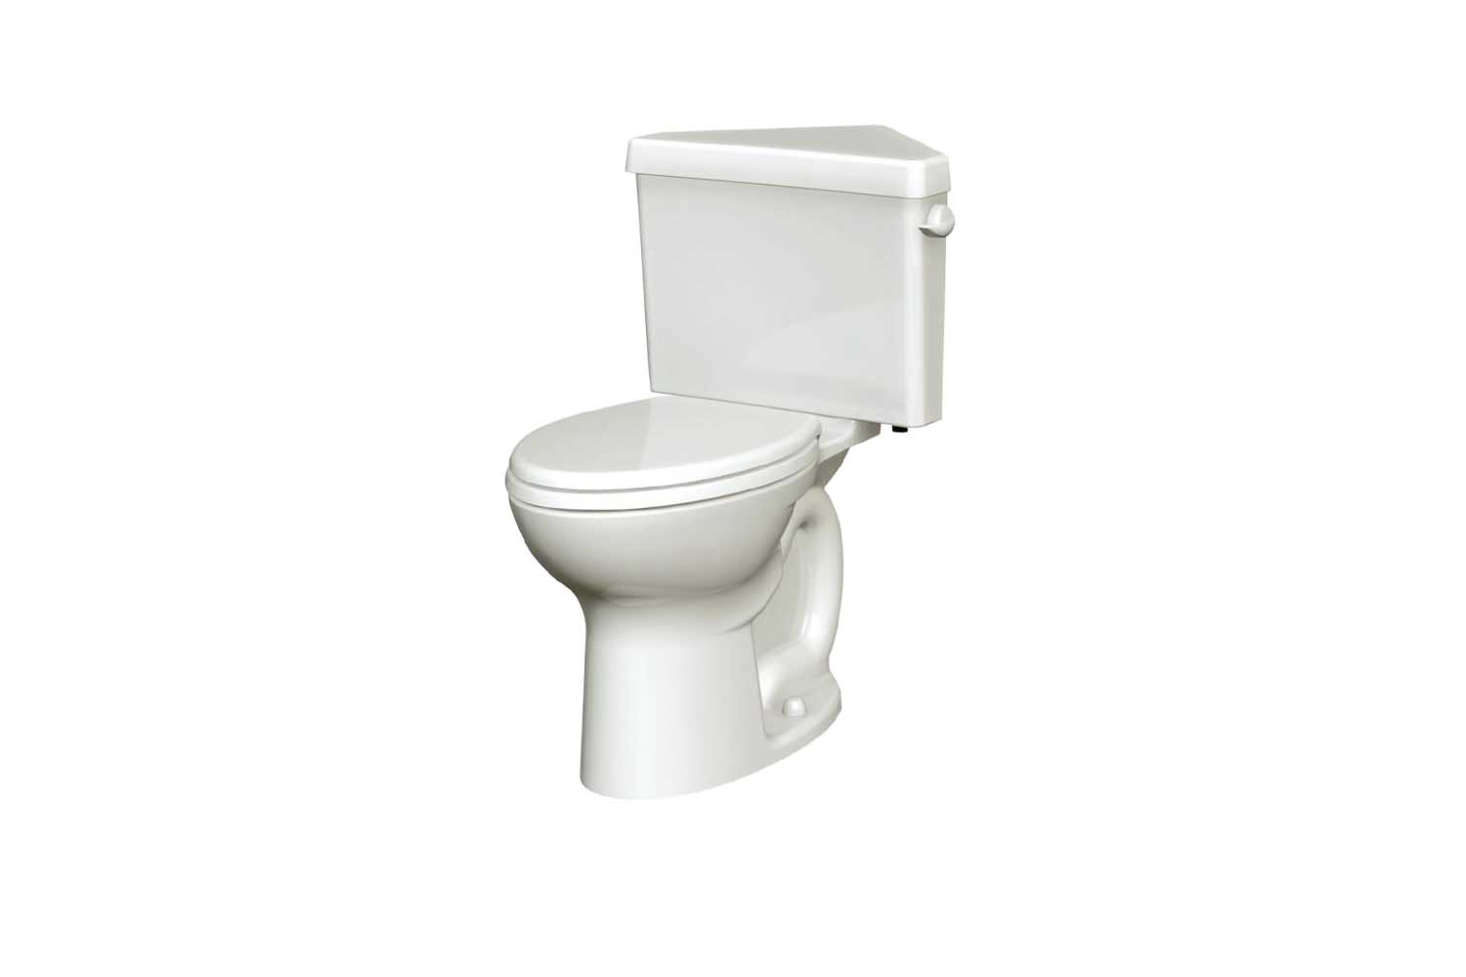 10 Easy Pieces Corner Toilets For Compact Bathrooms